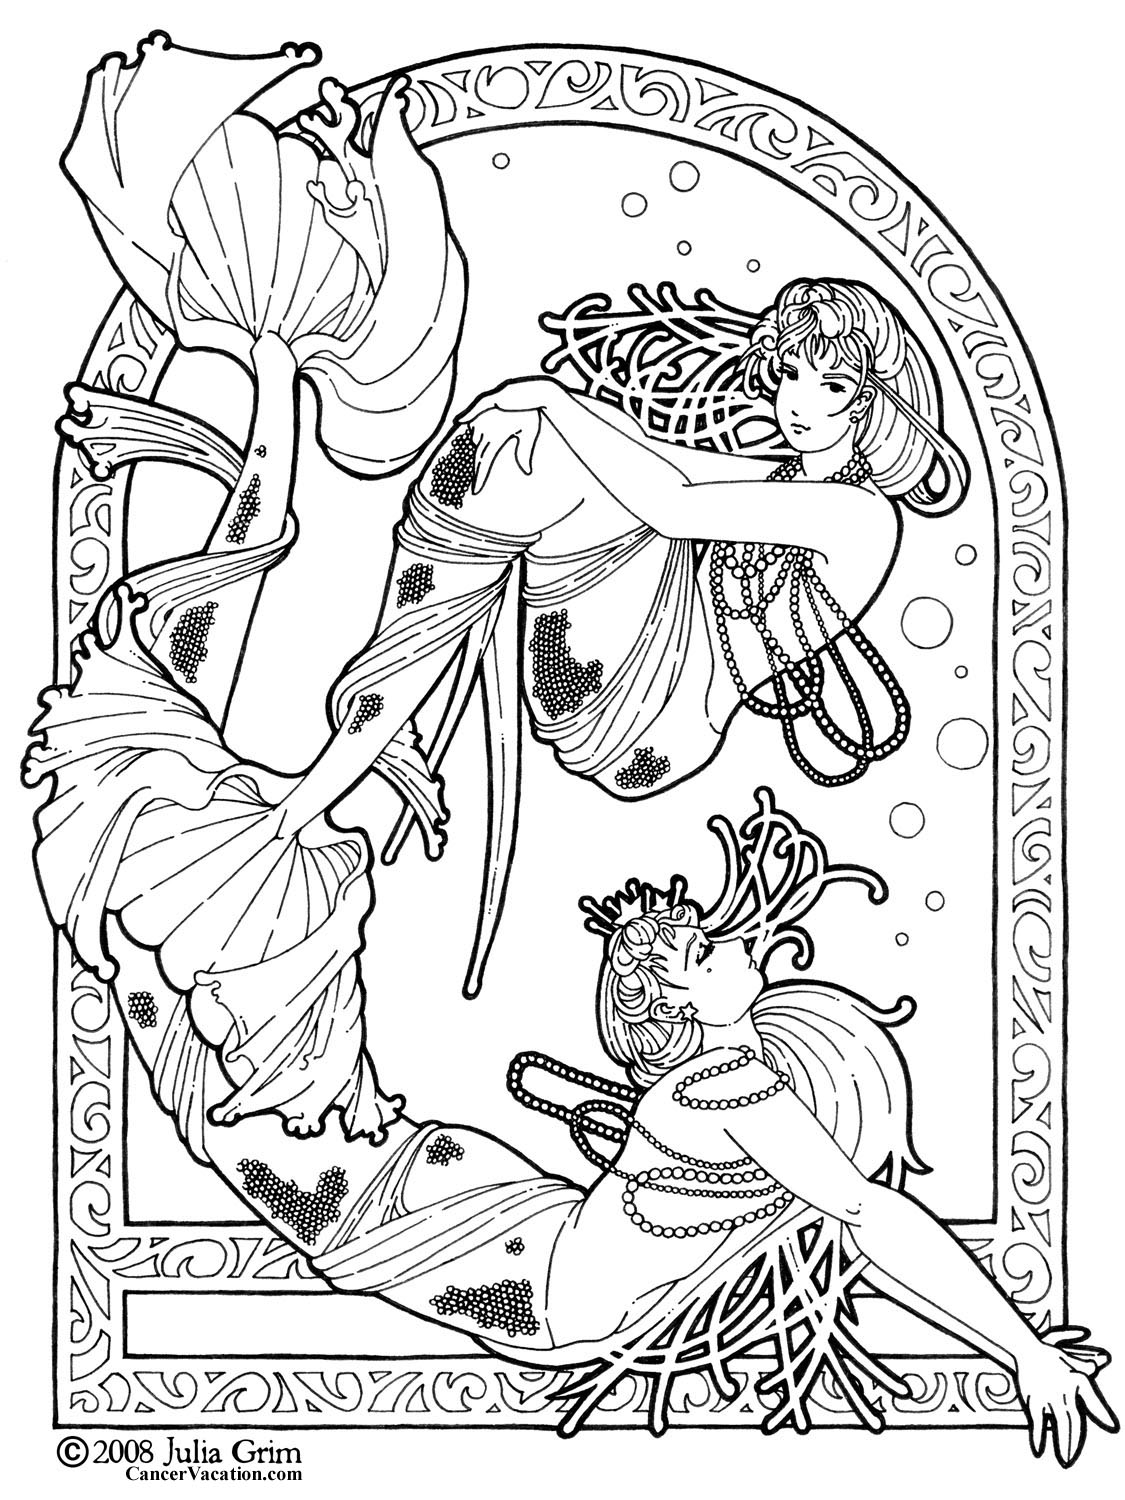 coloring printable free free printable coloring pages for adults advanced printable coloring free